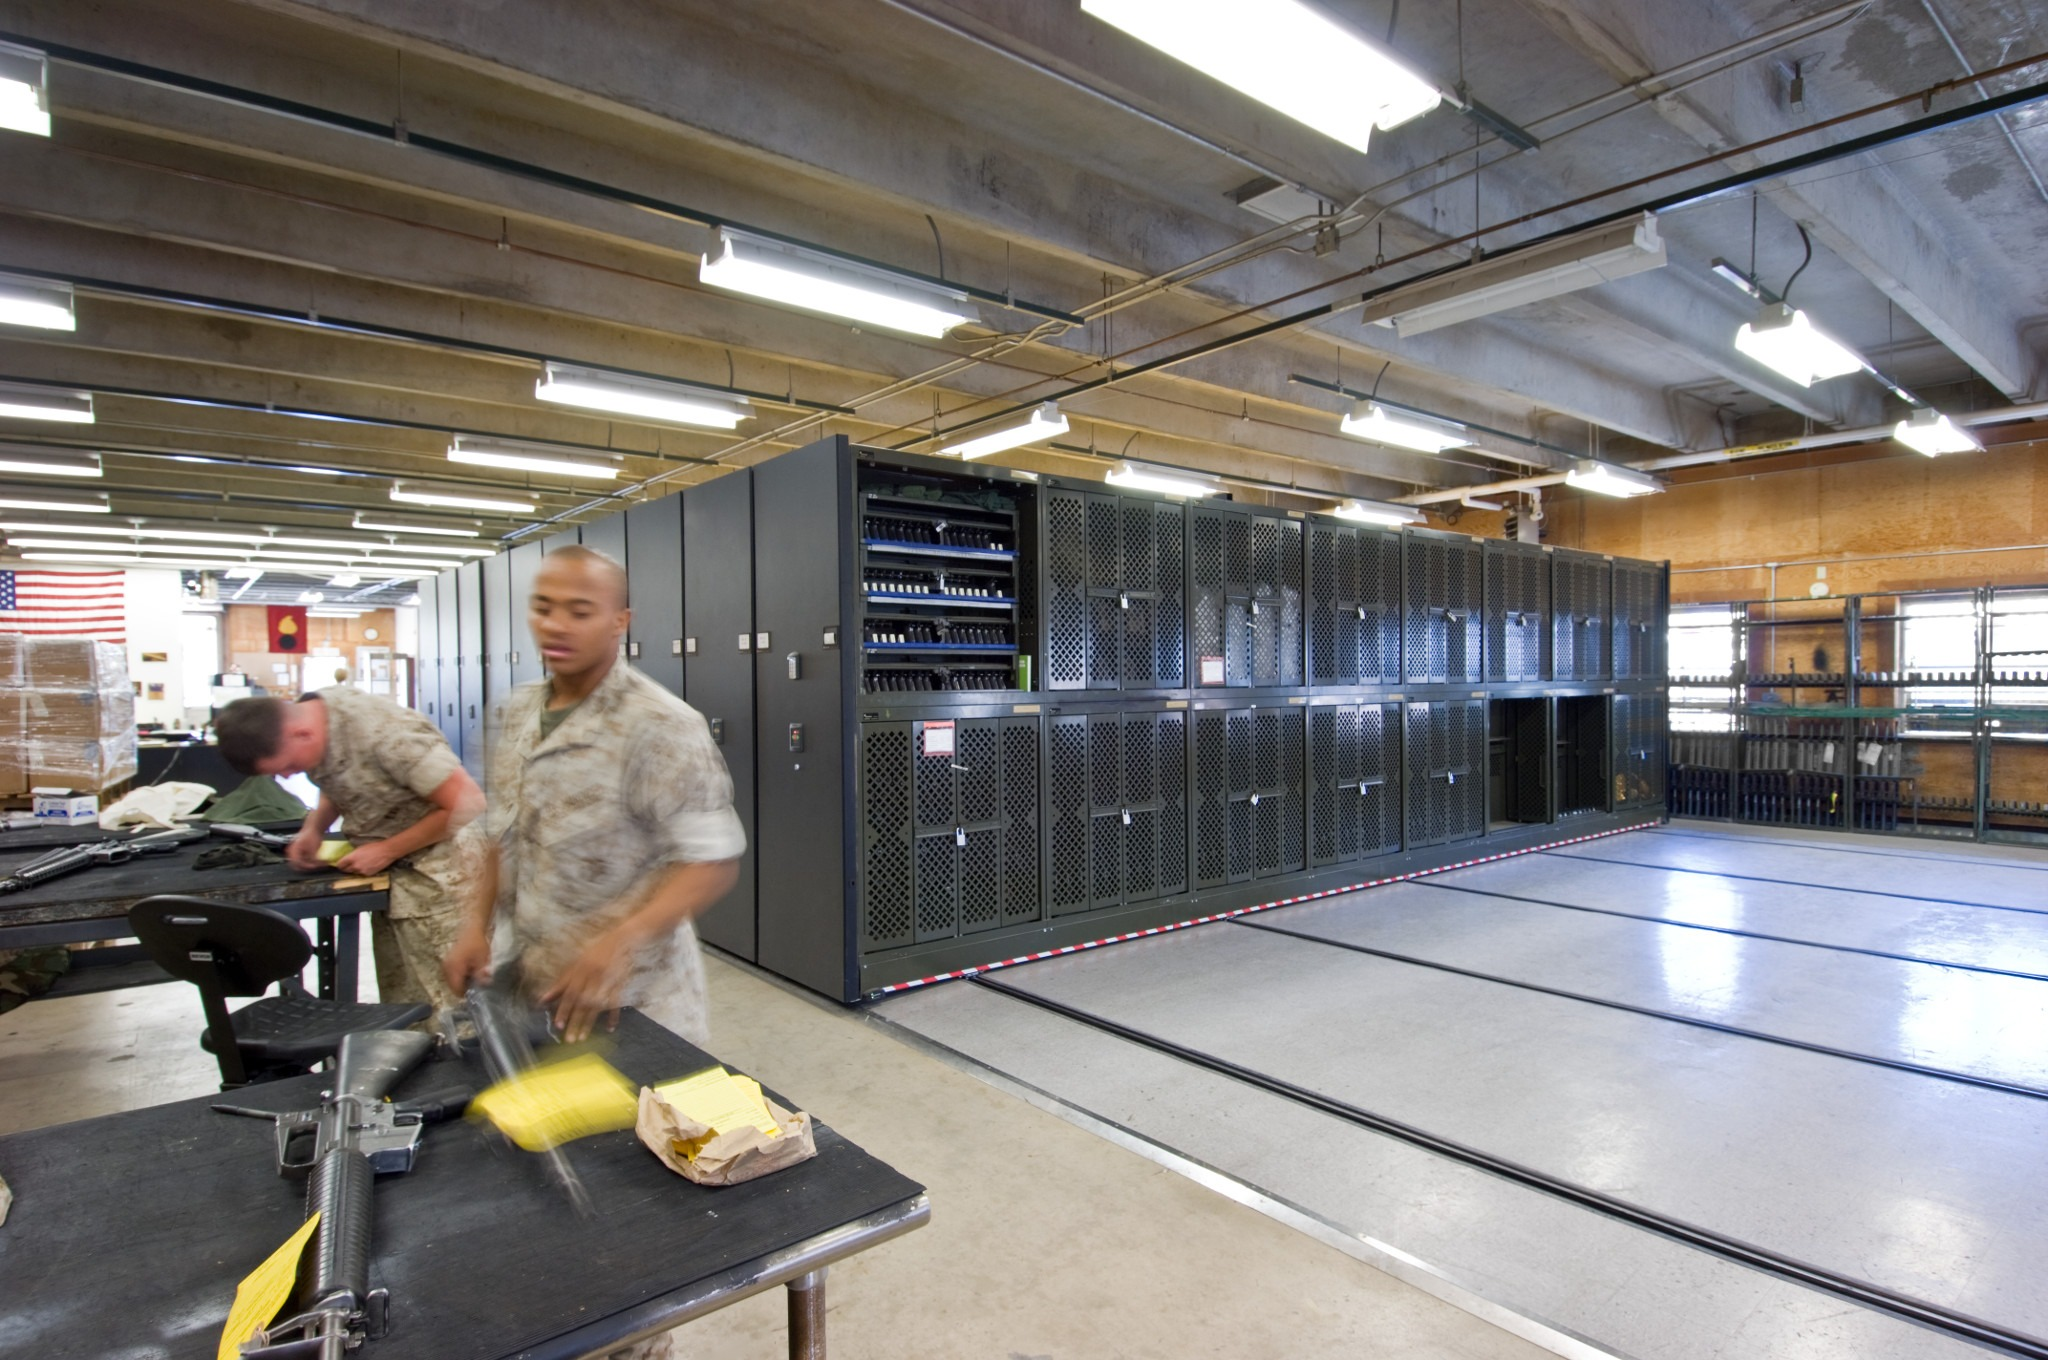 Military Storage - Weapons racks on compact mobile storage systems